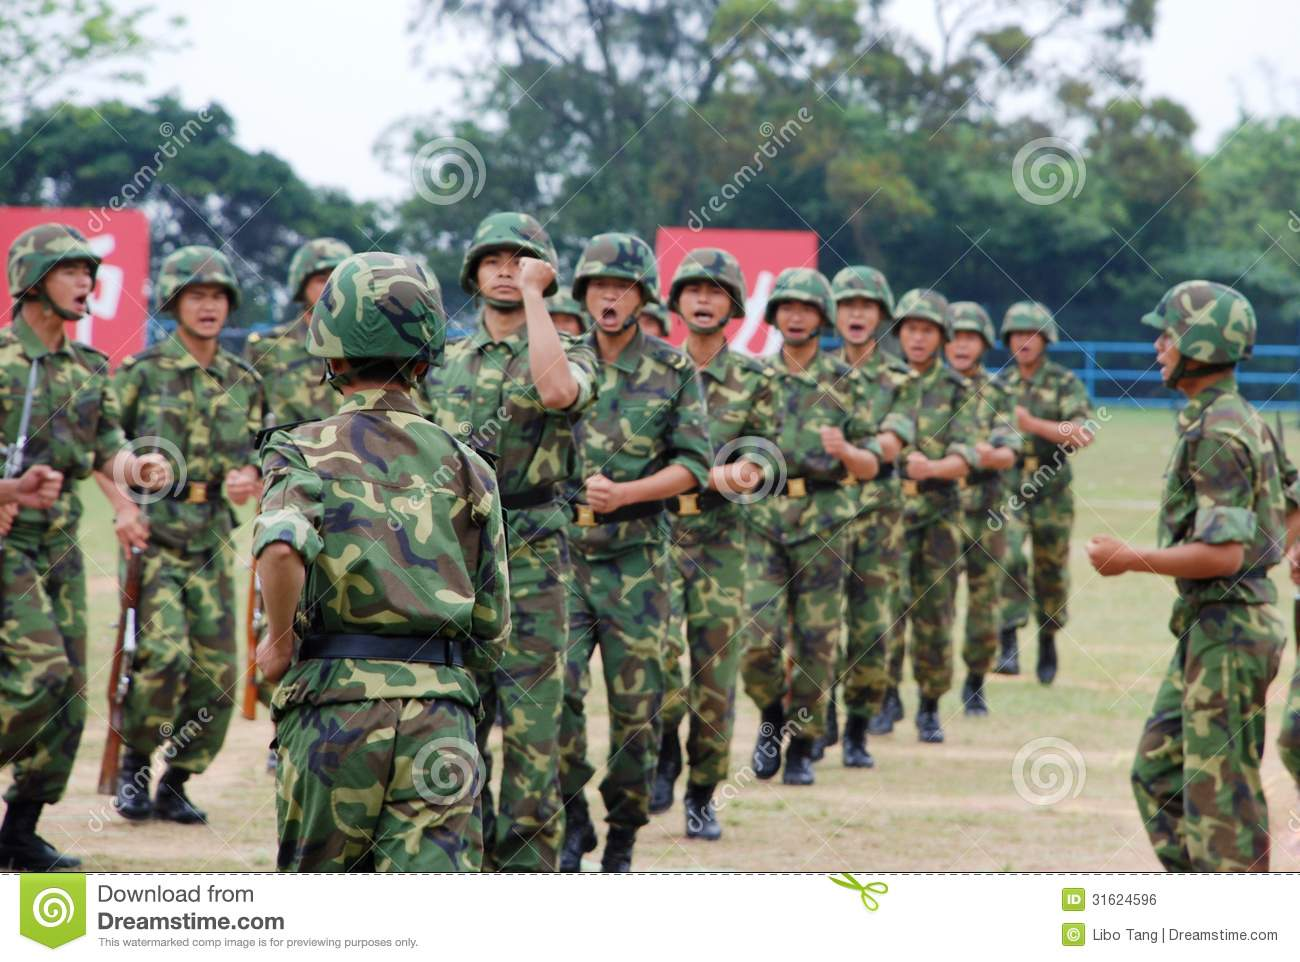 the peoples liberation army For the similarly named faction, see people's liberation and resistance the people's liberation army (chinese: 中国人民解放军) is the official name of the chinese armed forces.